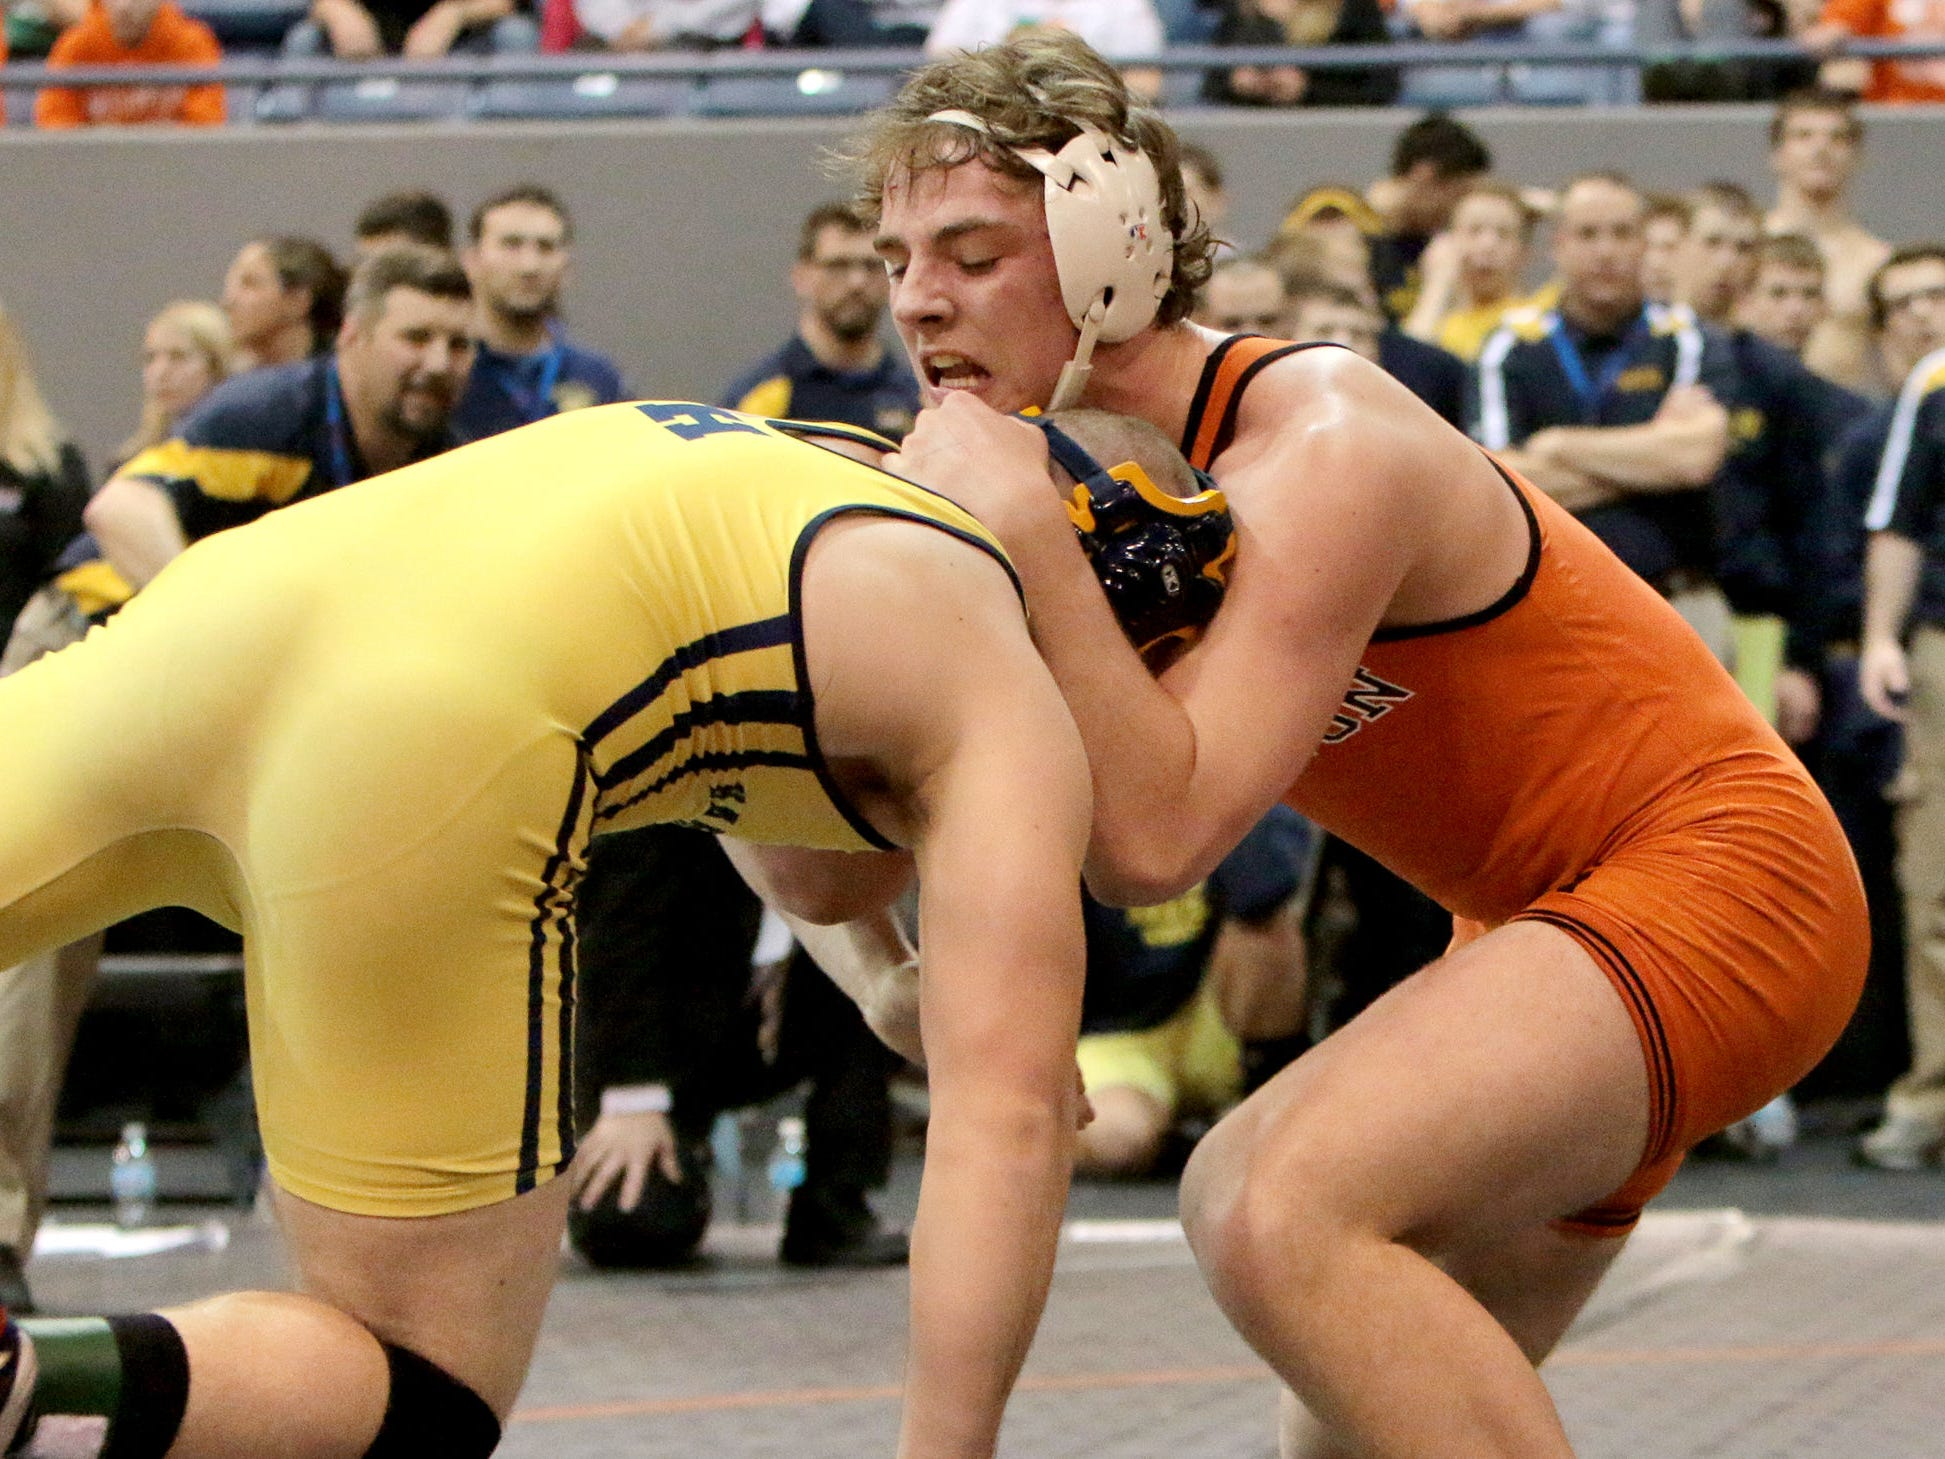 Brighton's Eric Conquest defeats Hartland's Aaron Laird in their match at 215 pounds.